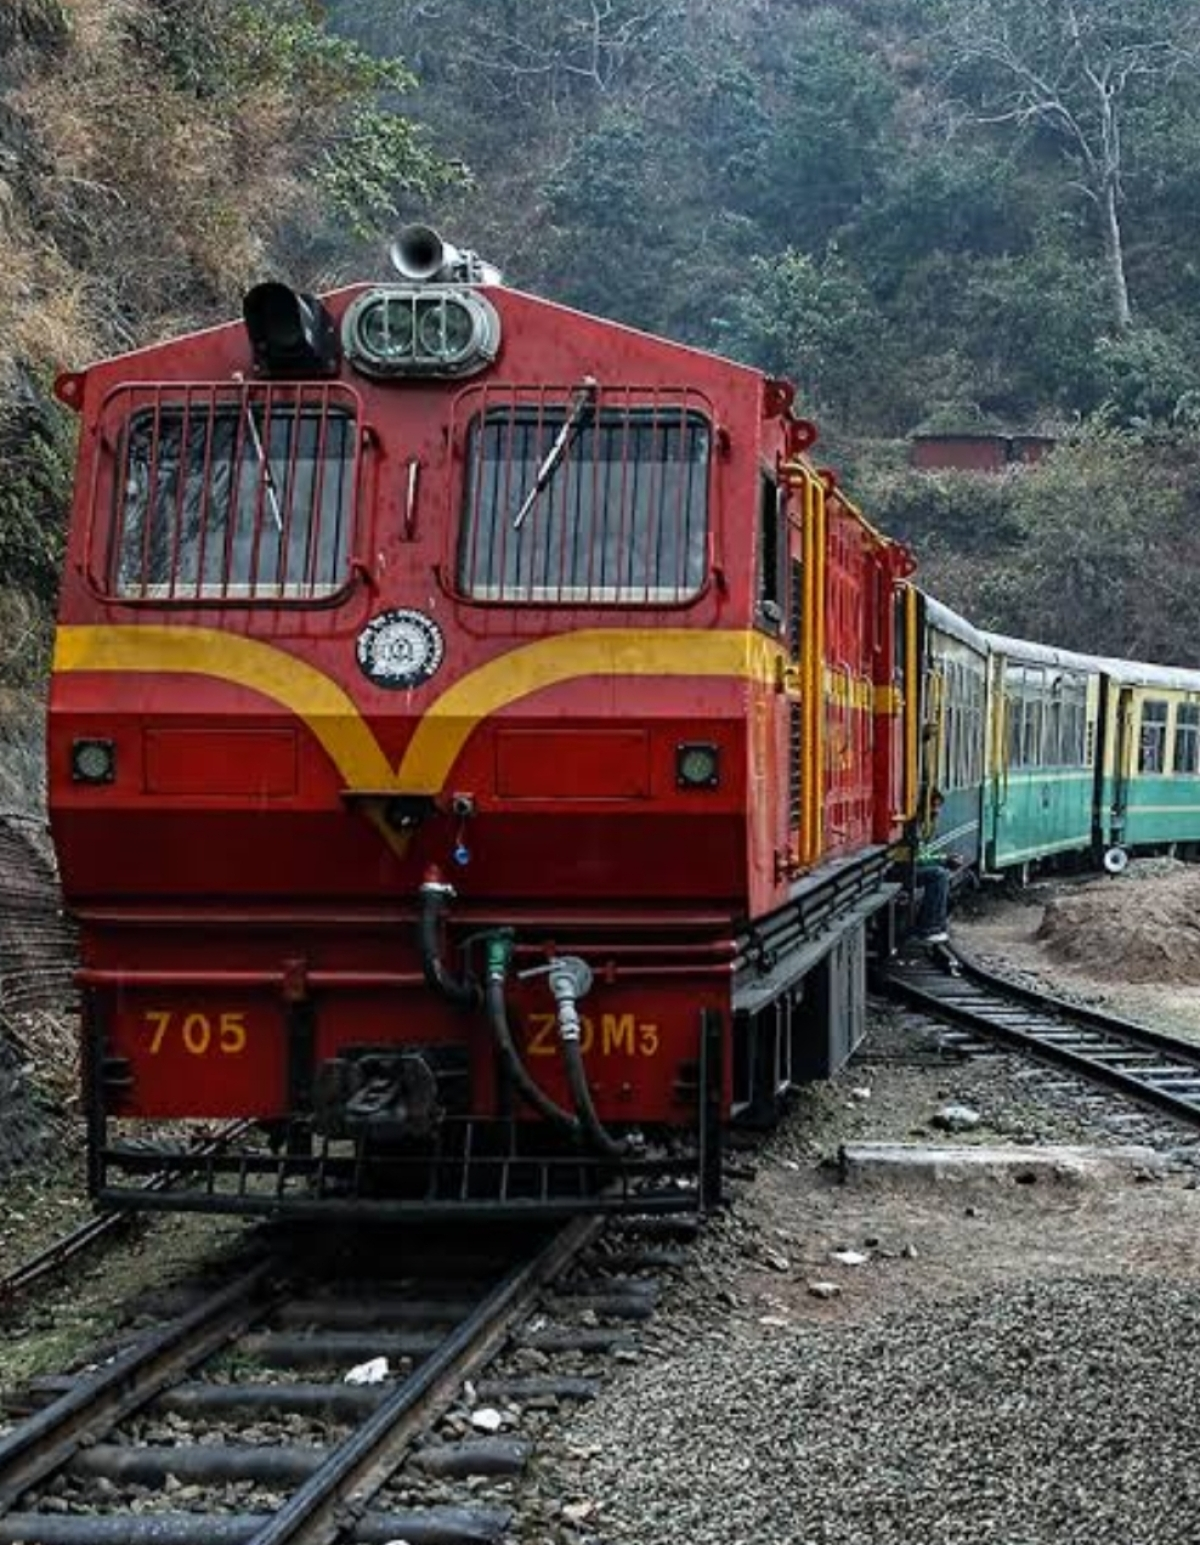 CR's Parel workshop turns out the first ZDM3 Loco for Northern Railway